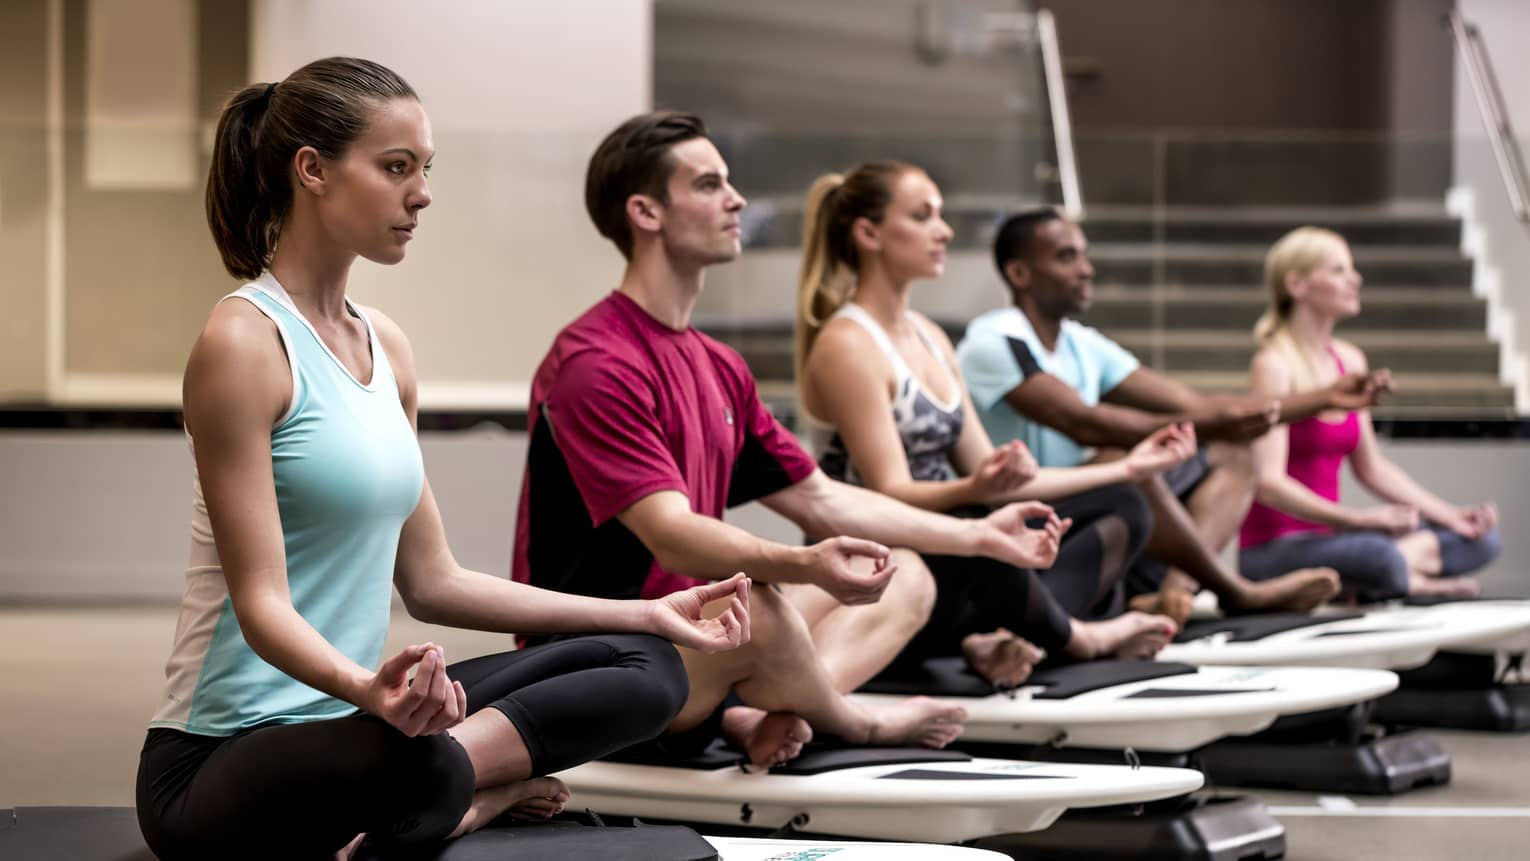 Row of people sitting cross-legged in meditation poses on small boards in Fitness Centre